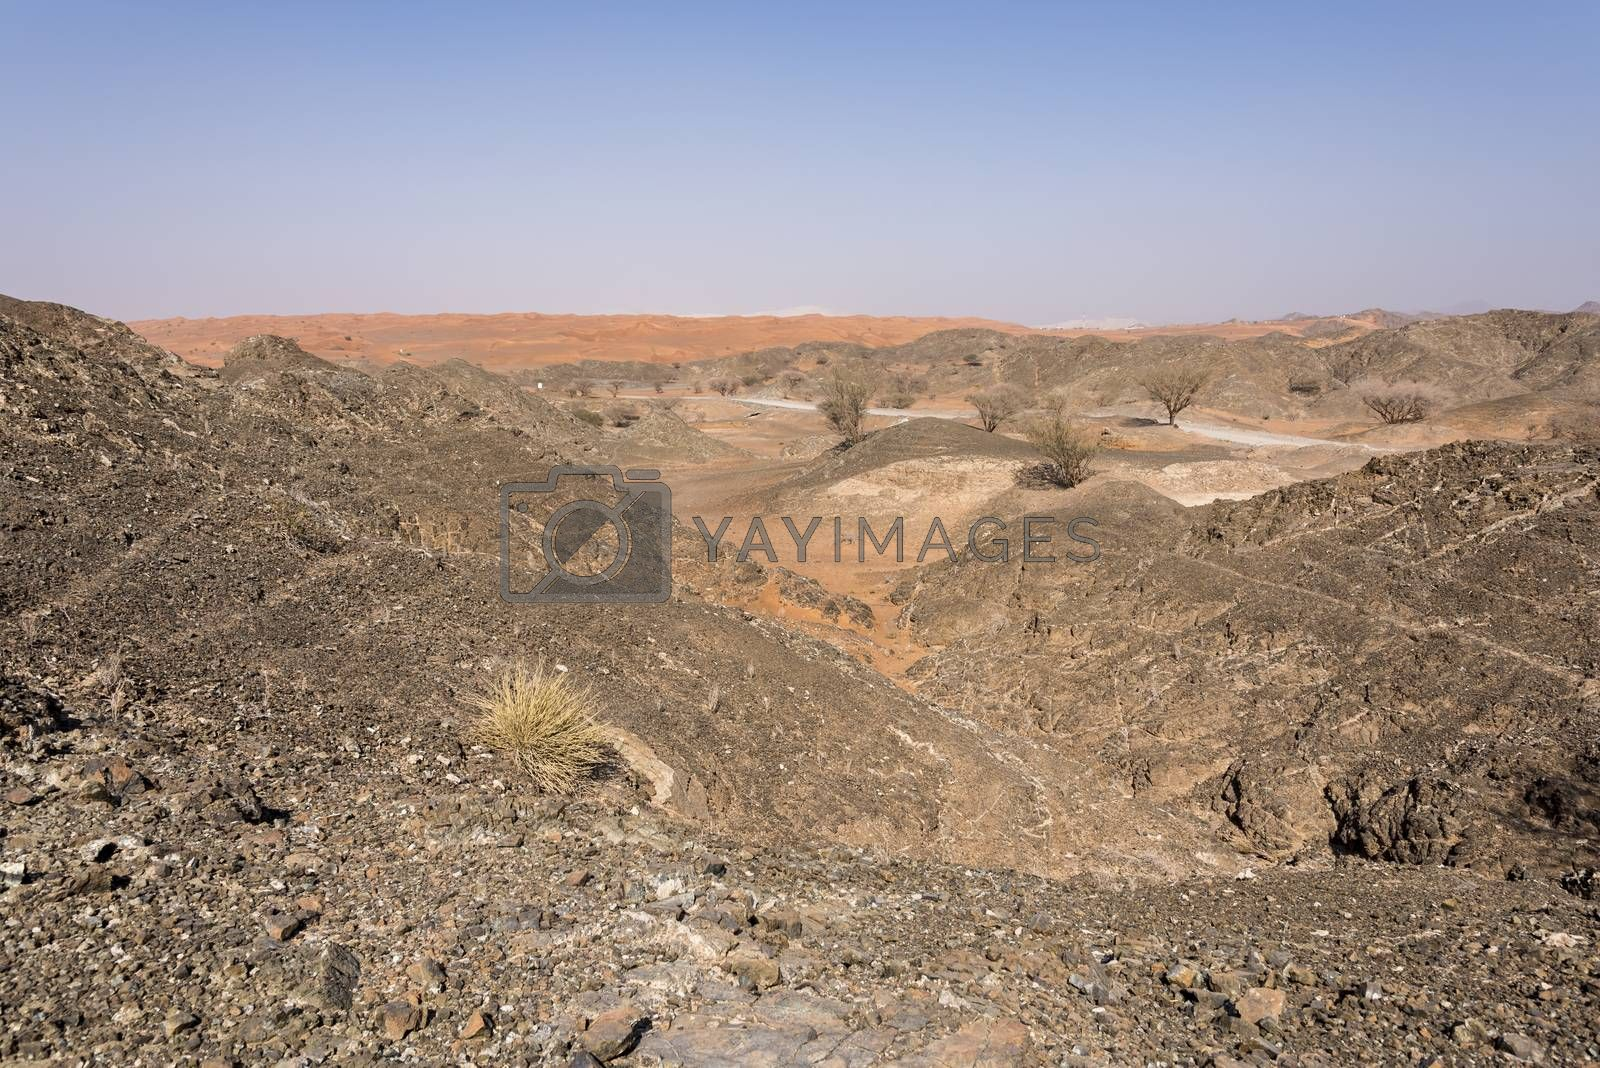 Scenic view of Wadi Al Ghail, with the mountain and the dunes. It is a village in between both desert (rocks and sand) and with amazing landscape all around Ras al Khaimah Emirates, UAE